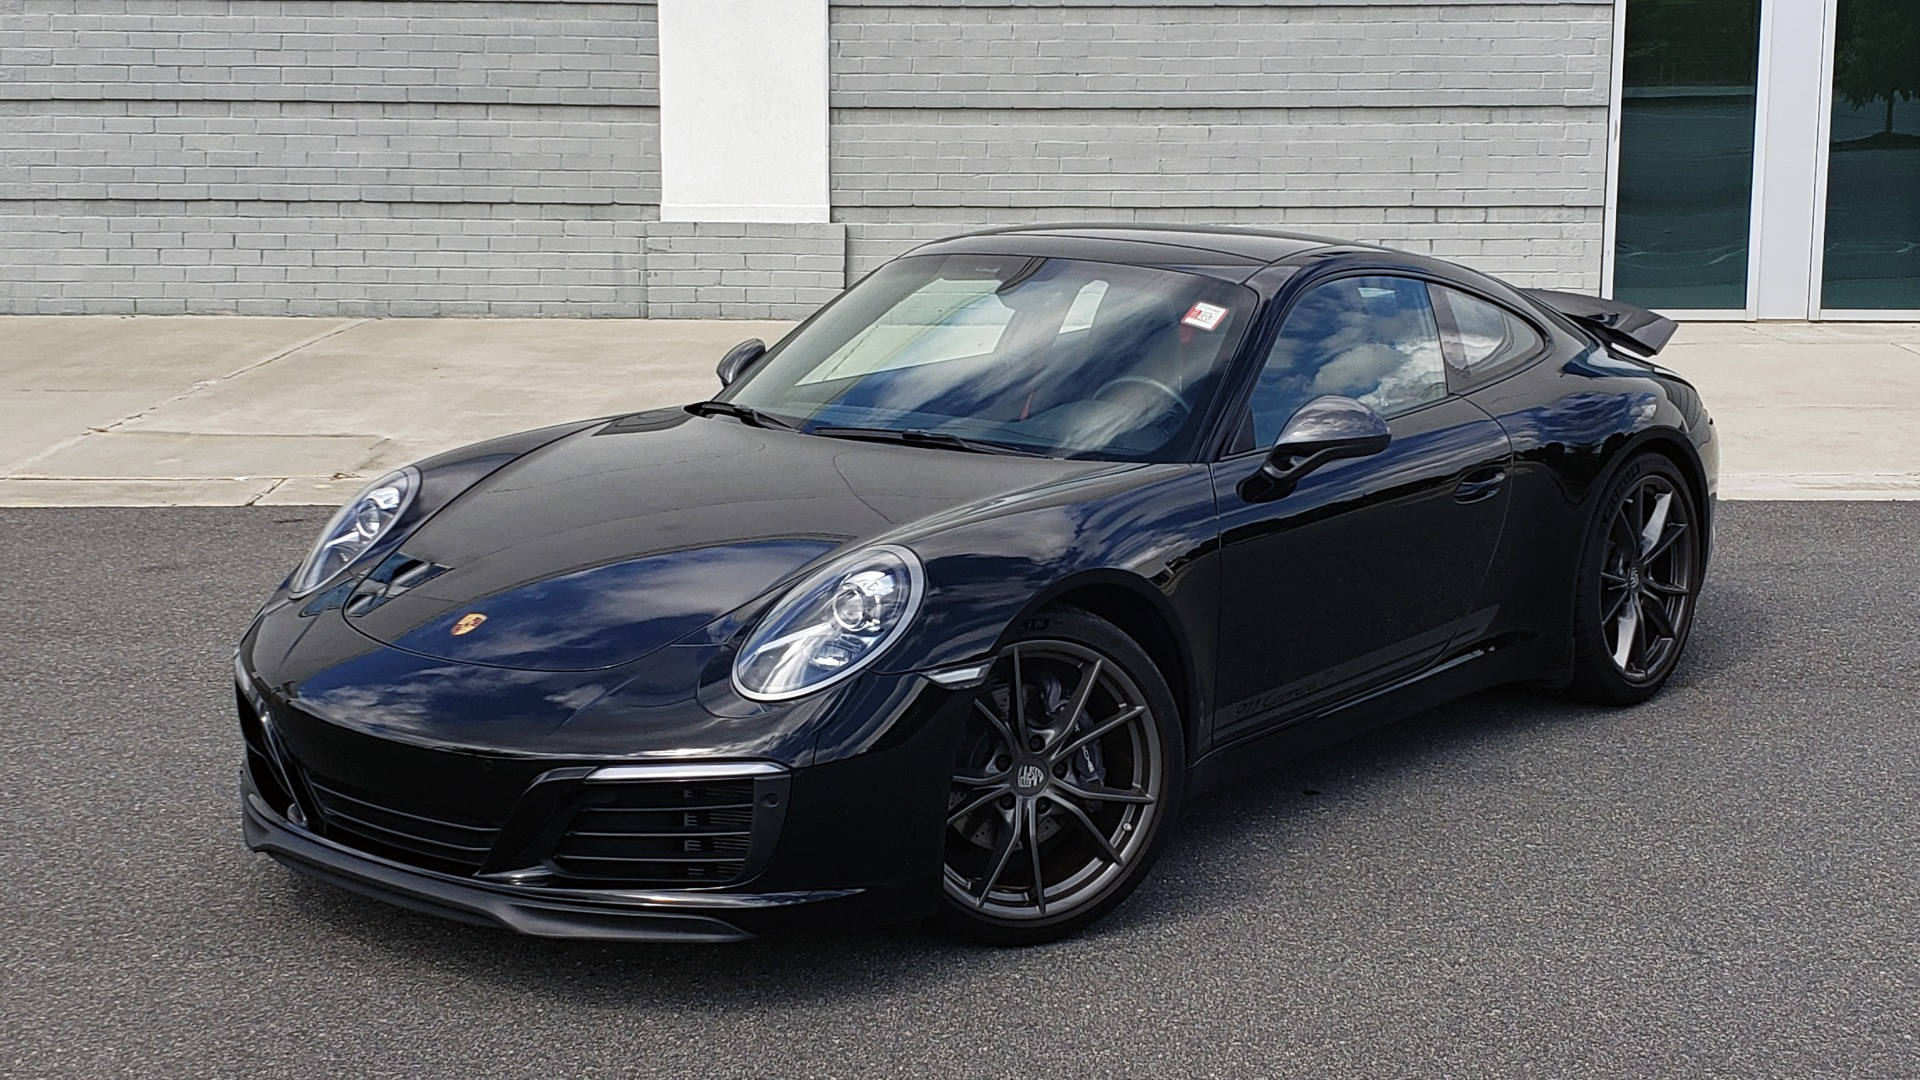 Used 2019 Porsche 911 CARRERA T / 3.0L H6 / MANUAL / PREMIUM / NAV / BOSE / SUNROOF / REARVIEW for sale $117,000 at Formula Imports in Charlotte NC 28227 2